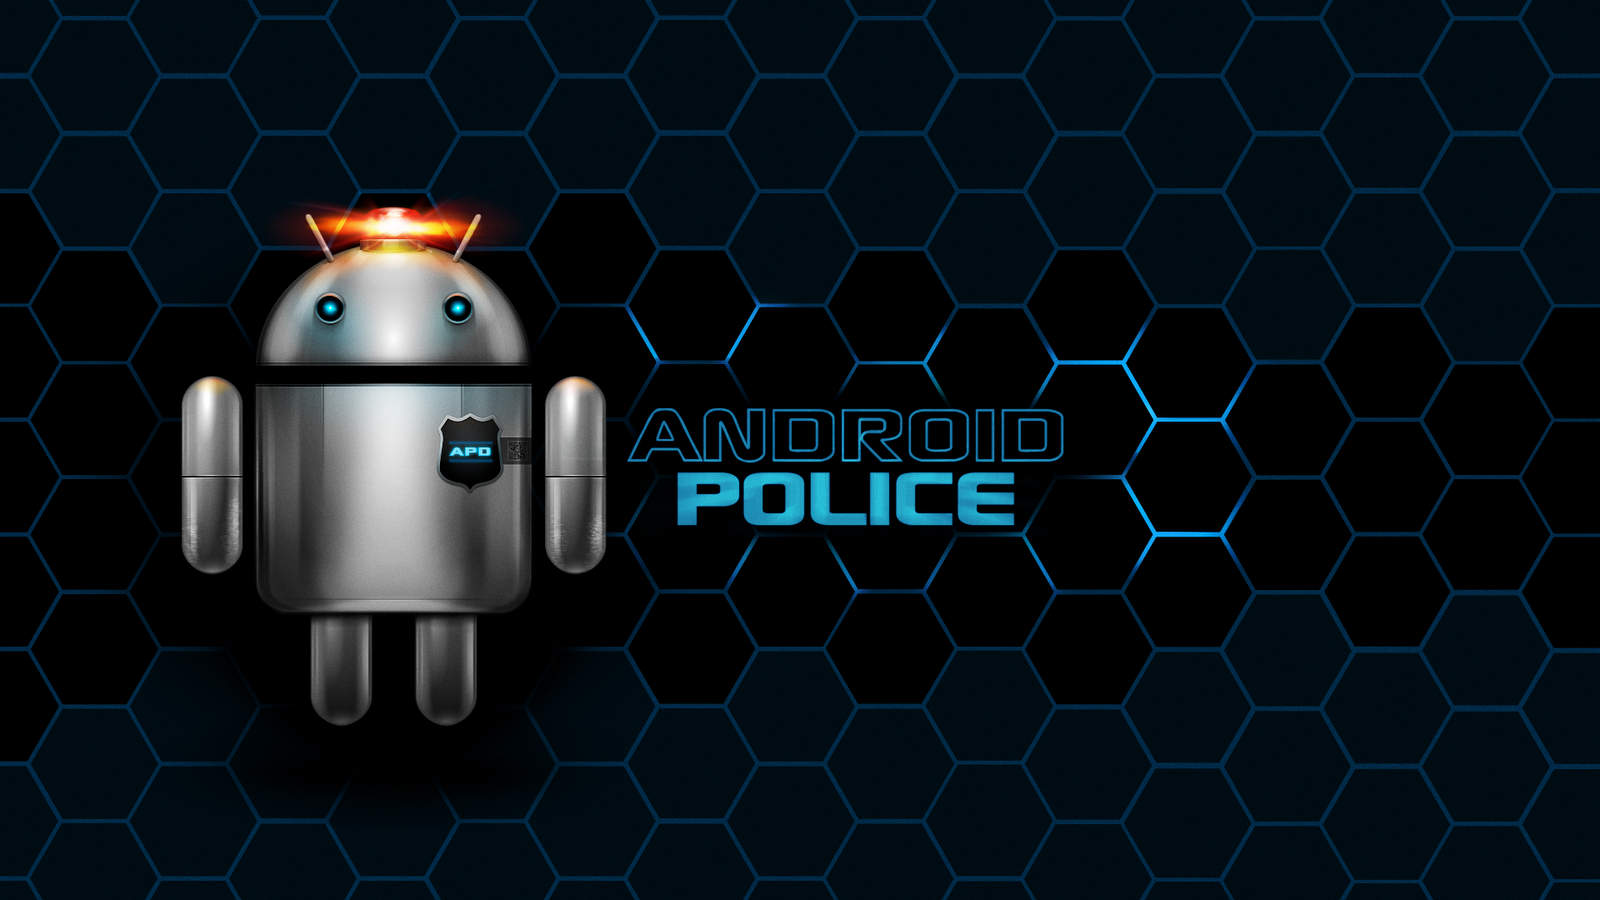 Robot Police Wallpaper